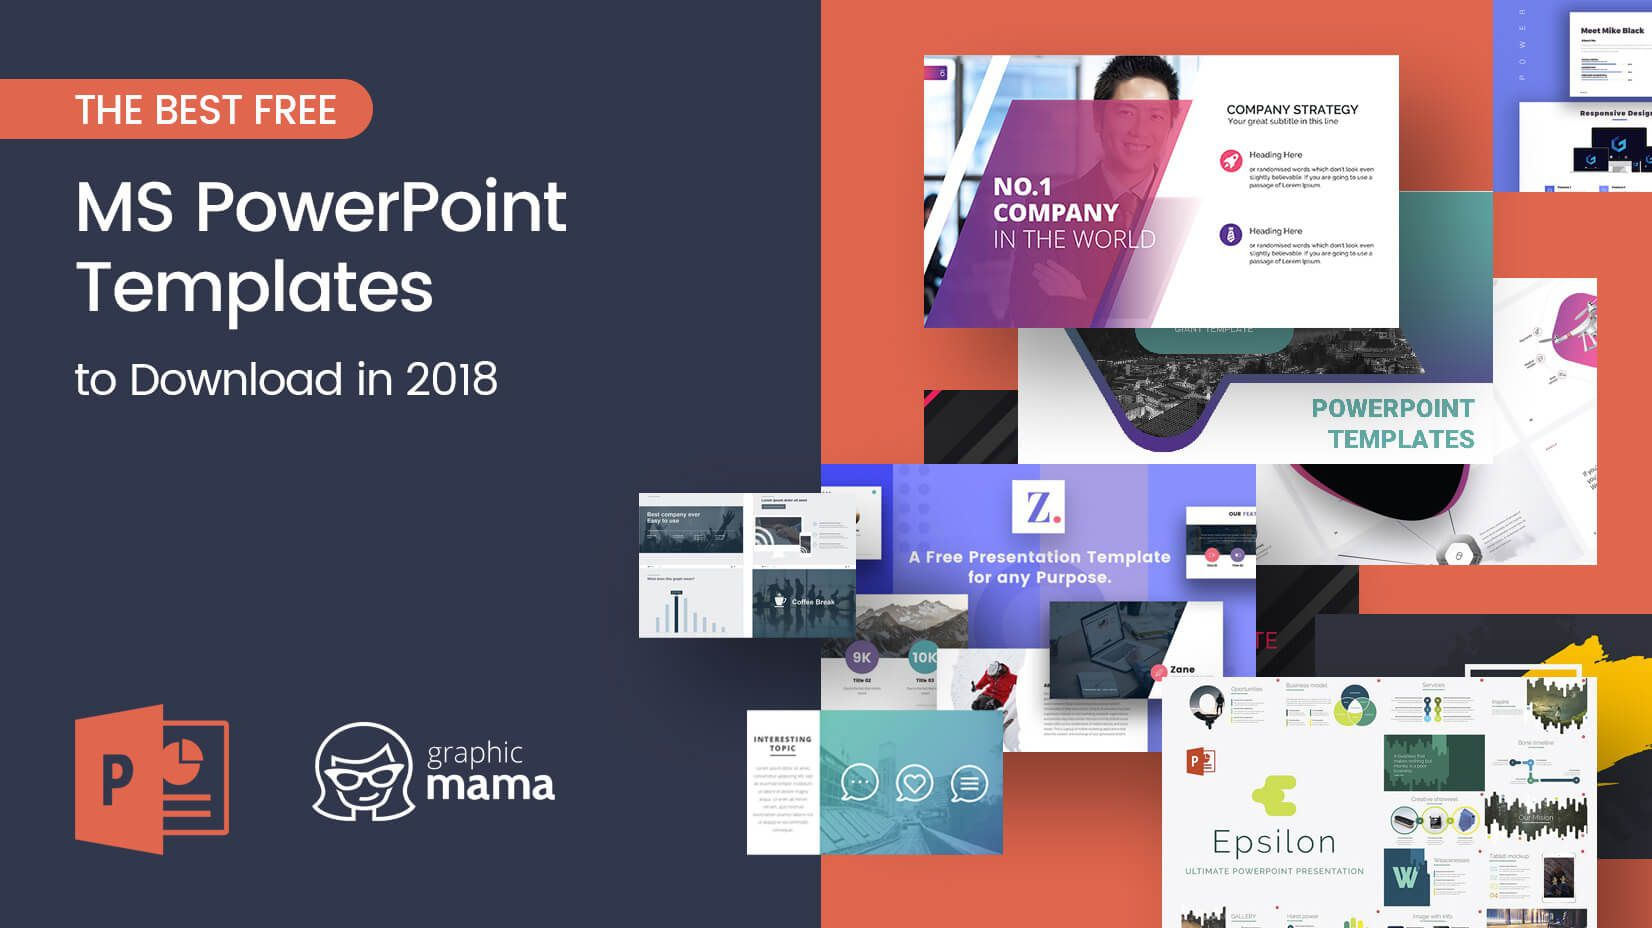 008 Awesome Free Downloadable Powerpoint Template Design  Templates Download Animated Background ThemeFull